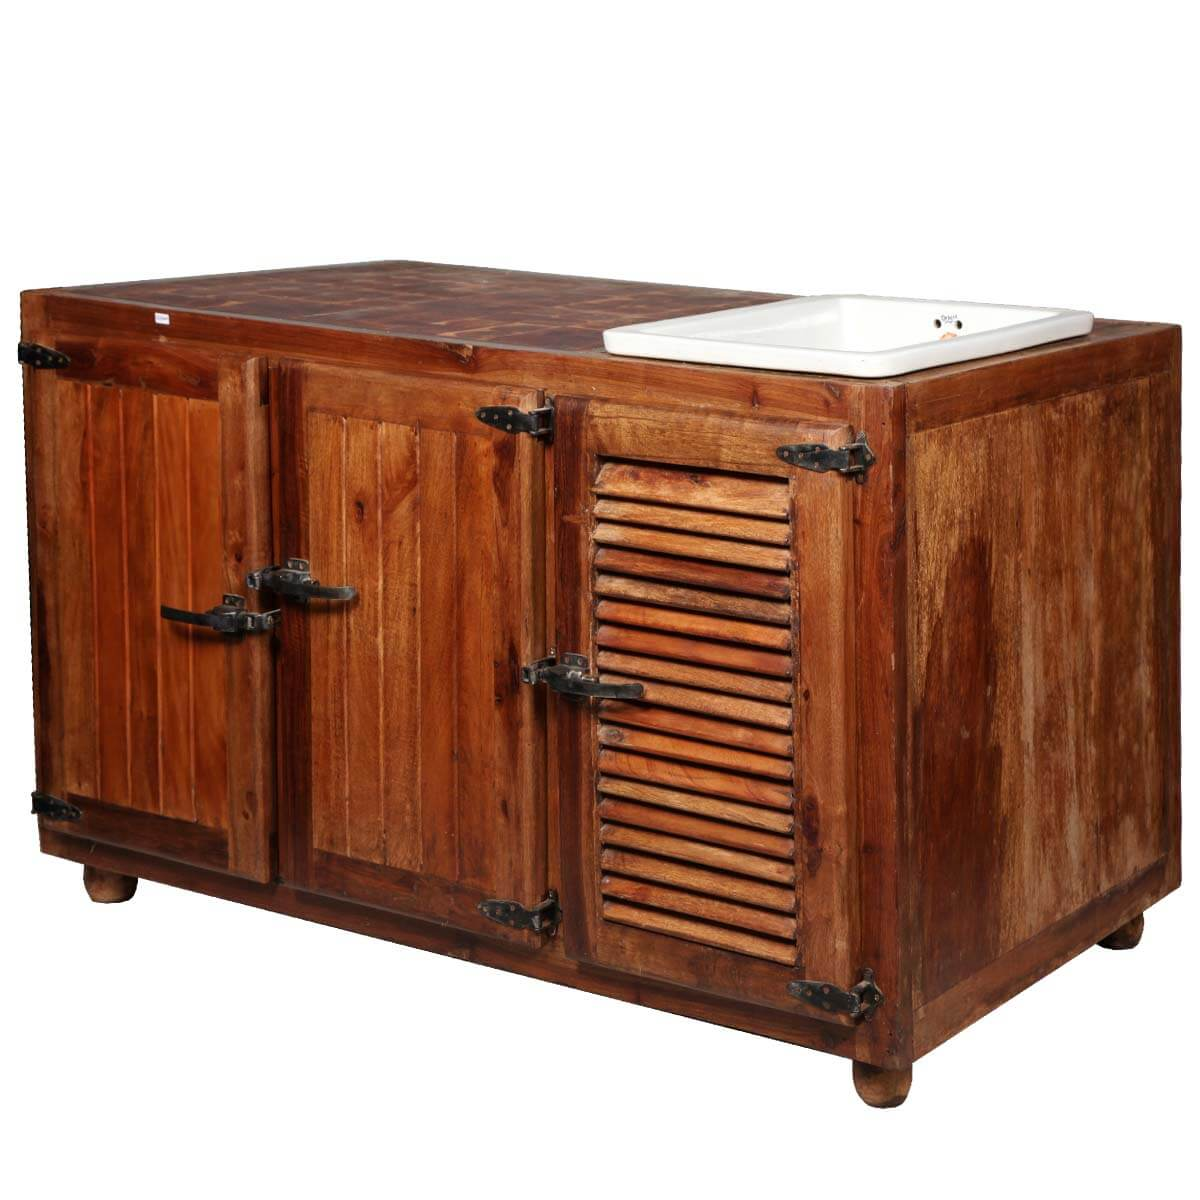 old fashioned teak wood kitchen sink cabinet